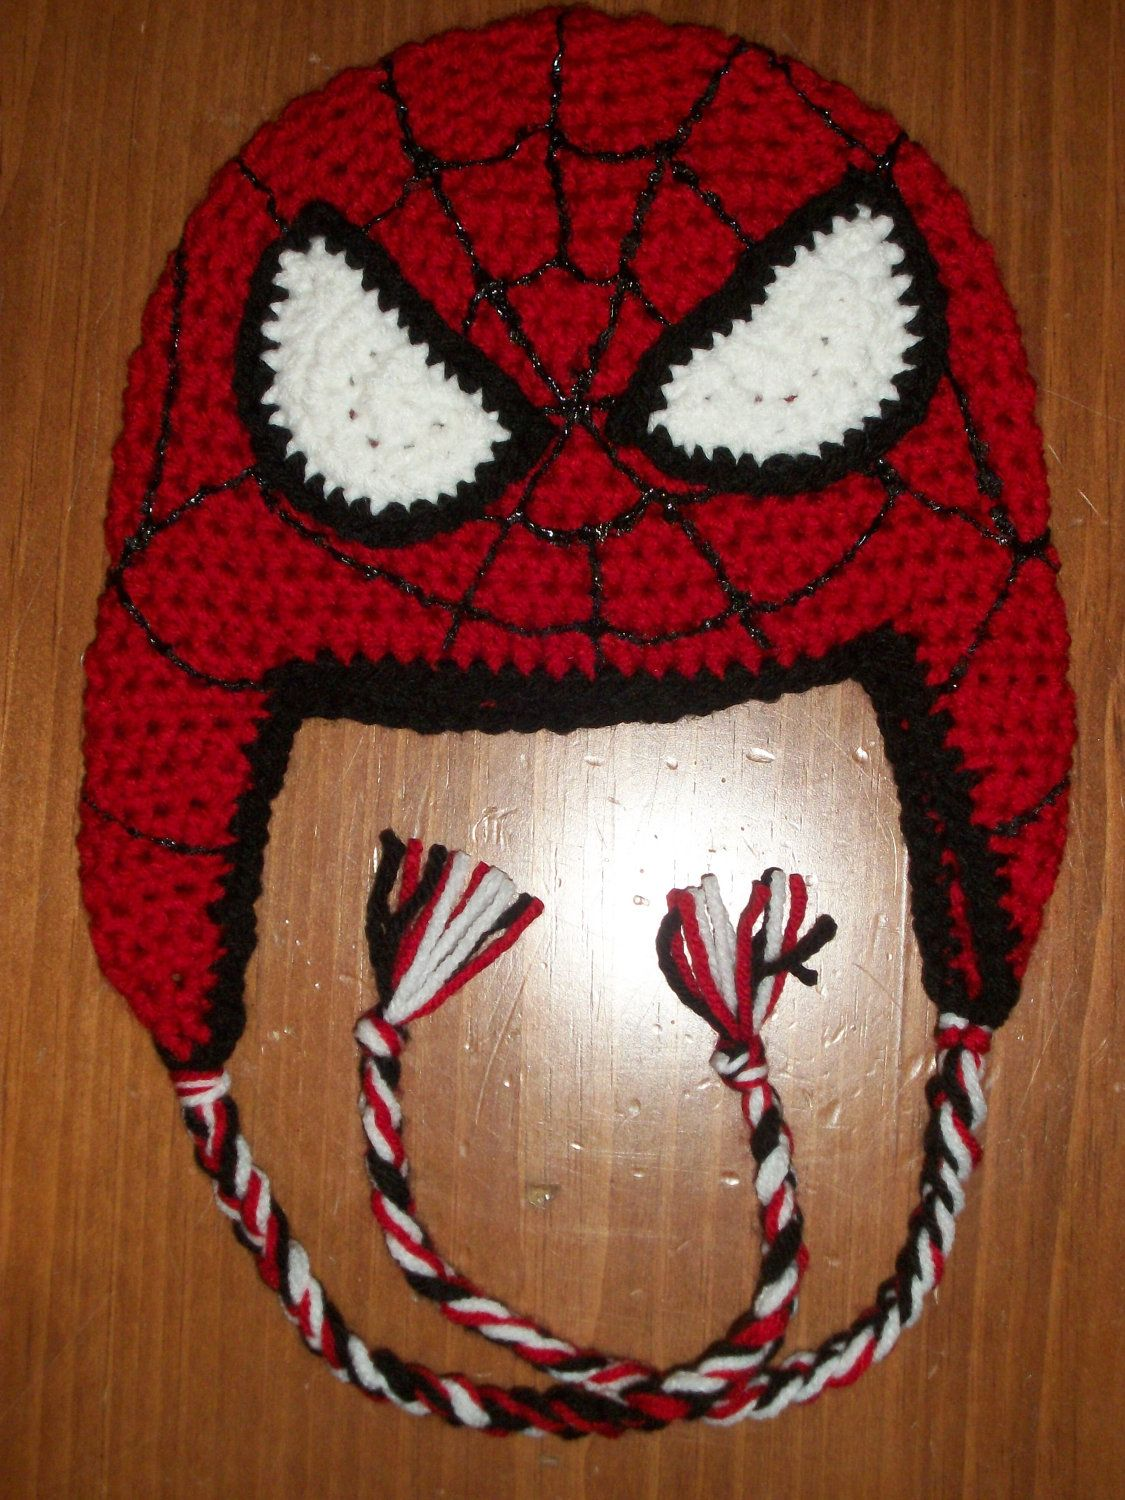 Gorras Punto On Pinterest Knit Hats Hat Patterns And Berets